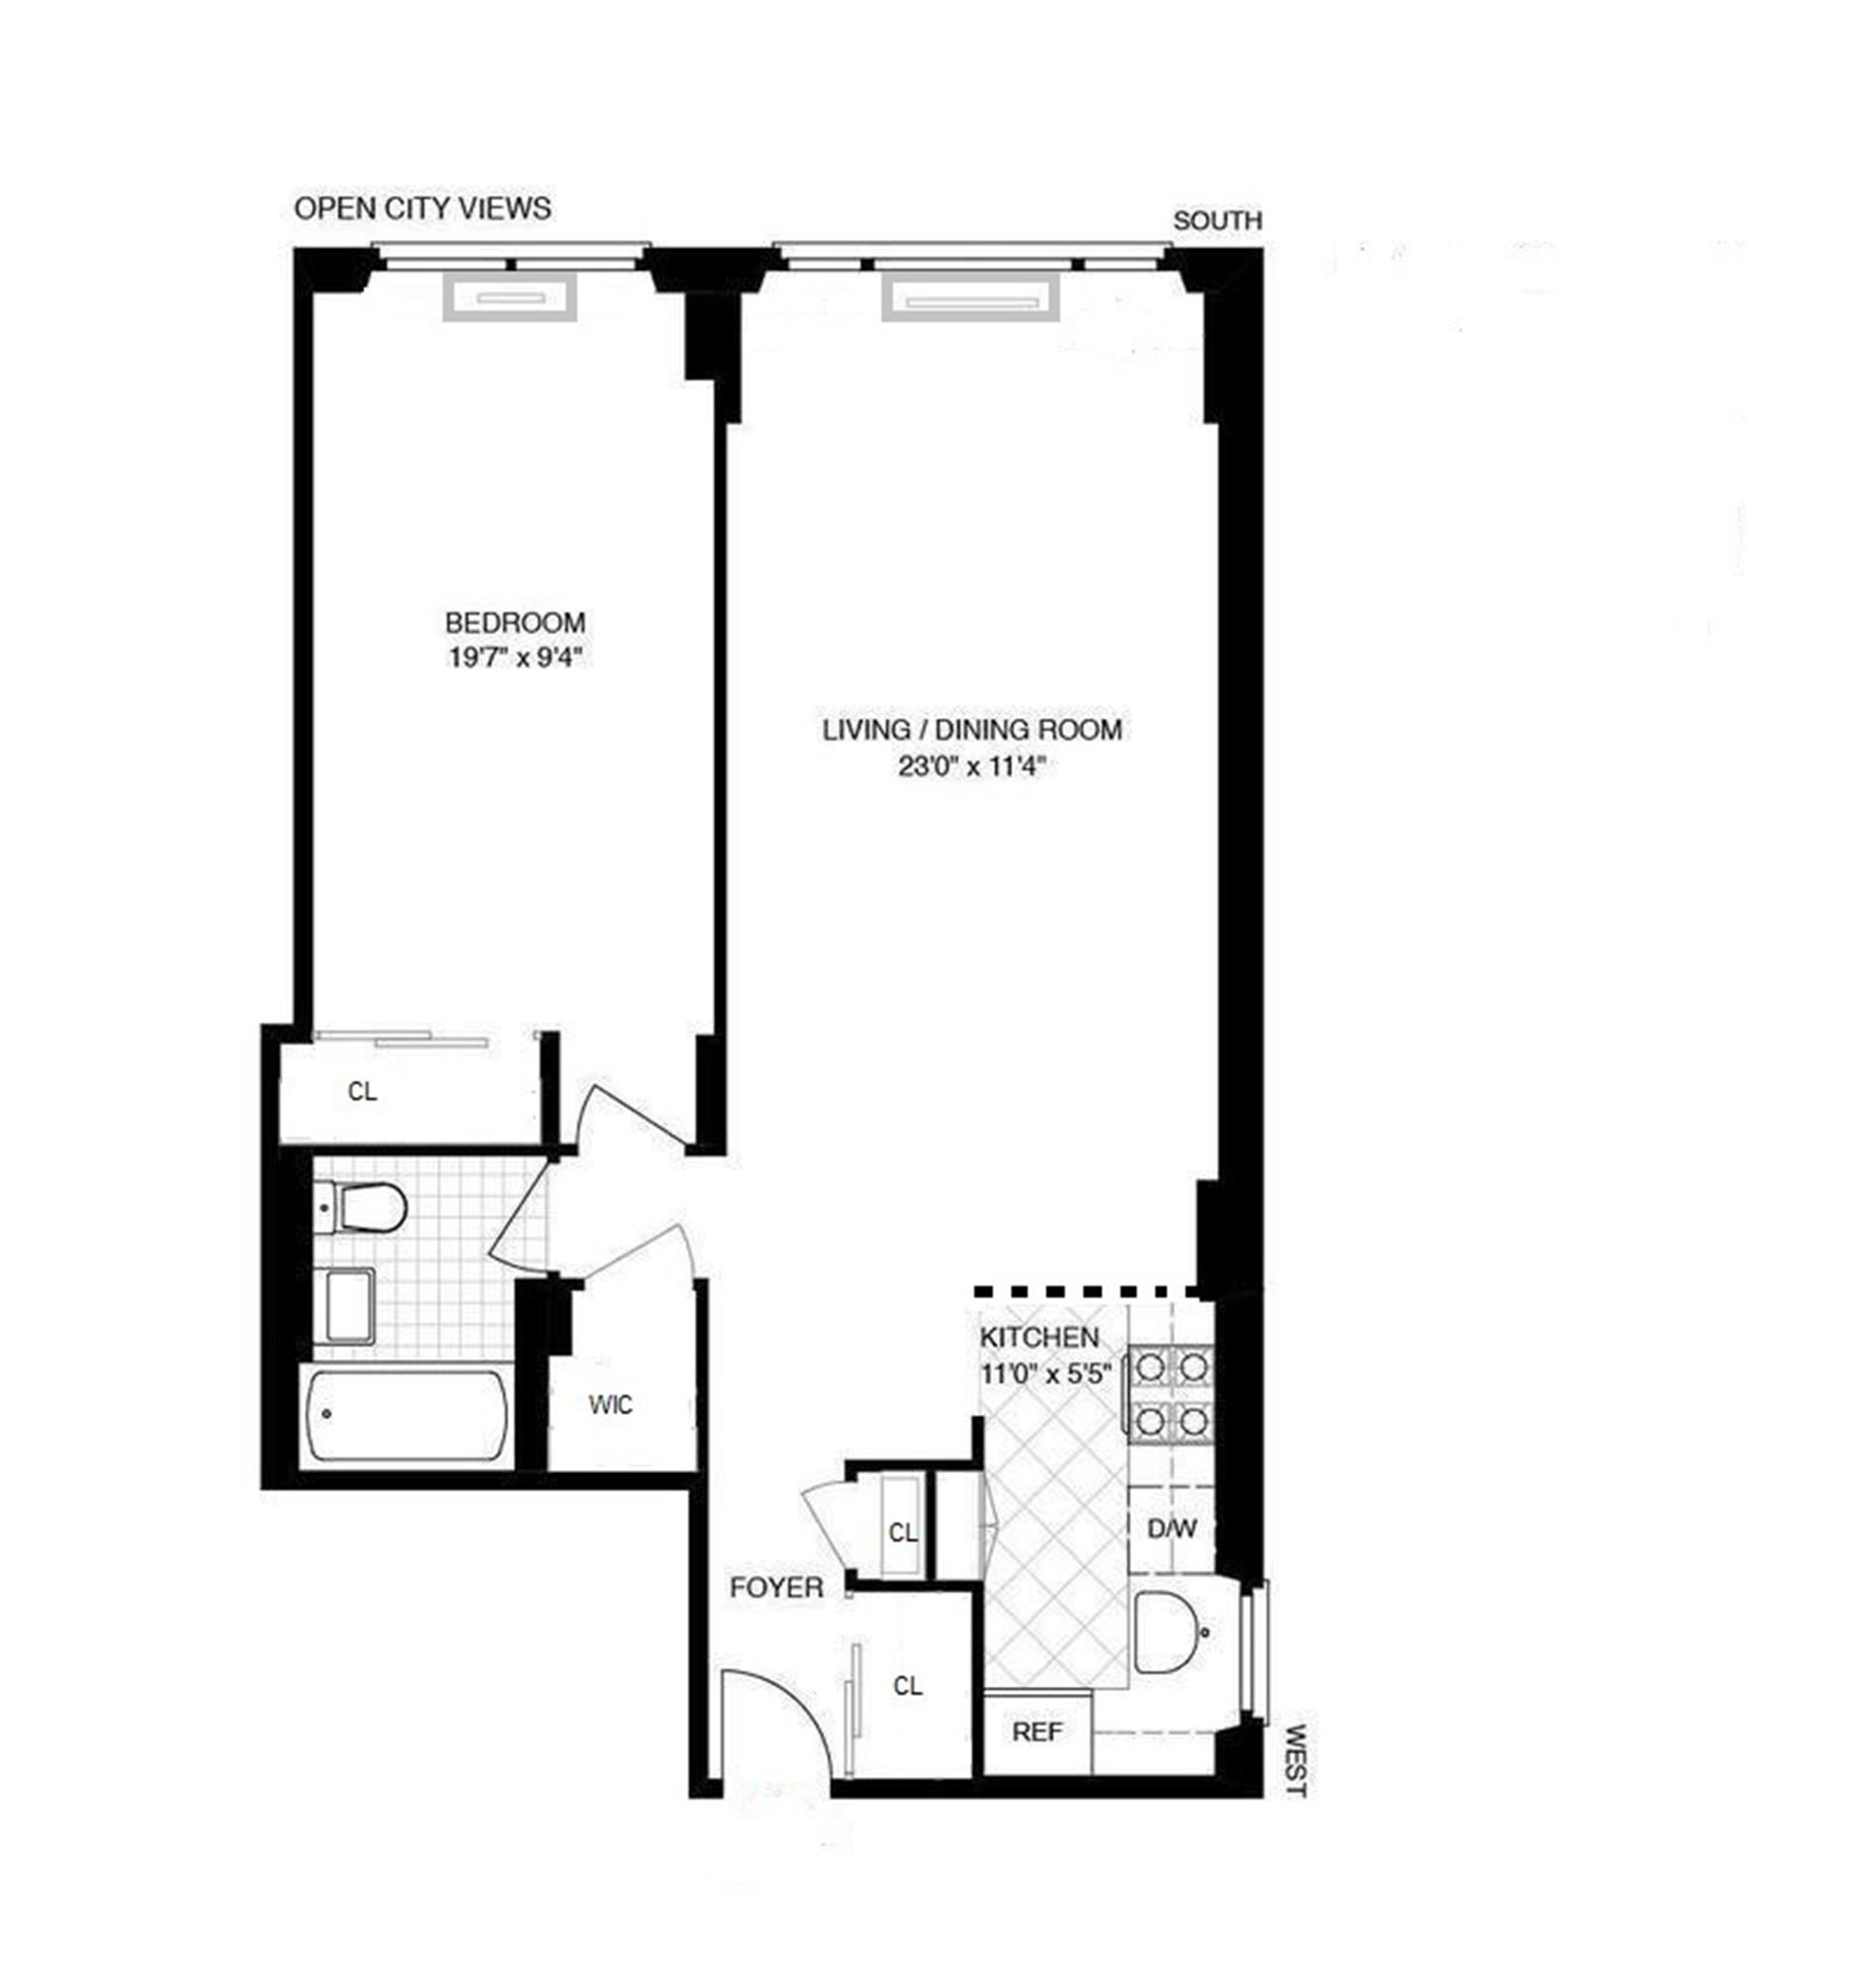 Floor plan of BELMONT 79, 230 East 79th St, 10A - Upper East Side, New York